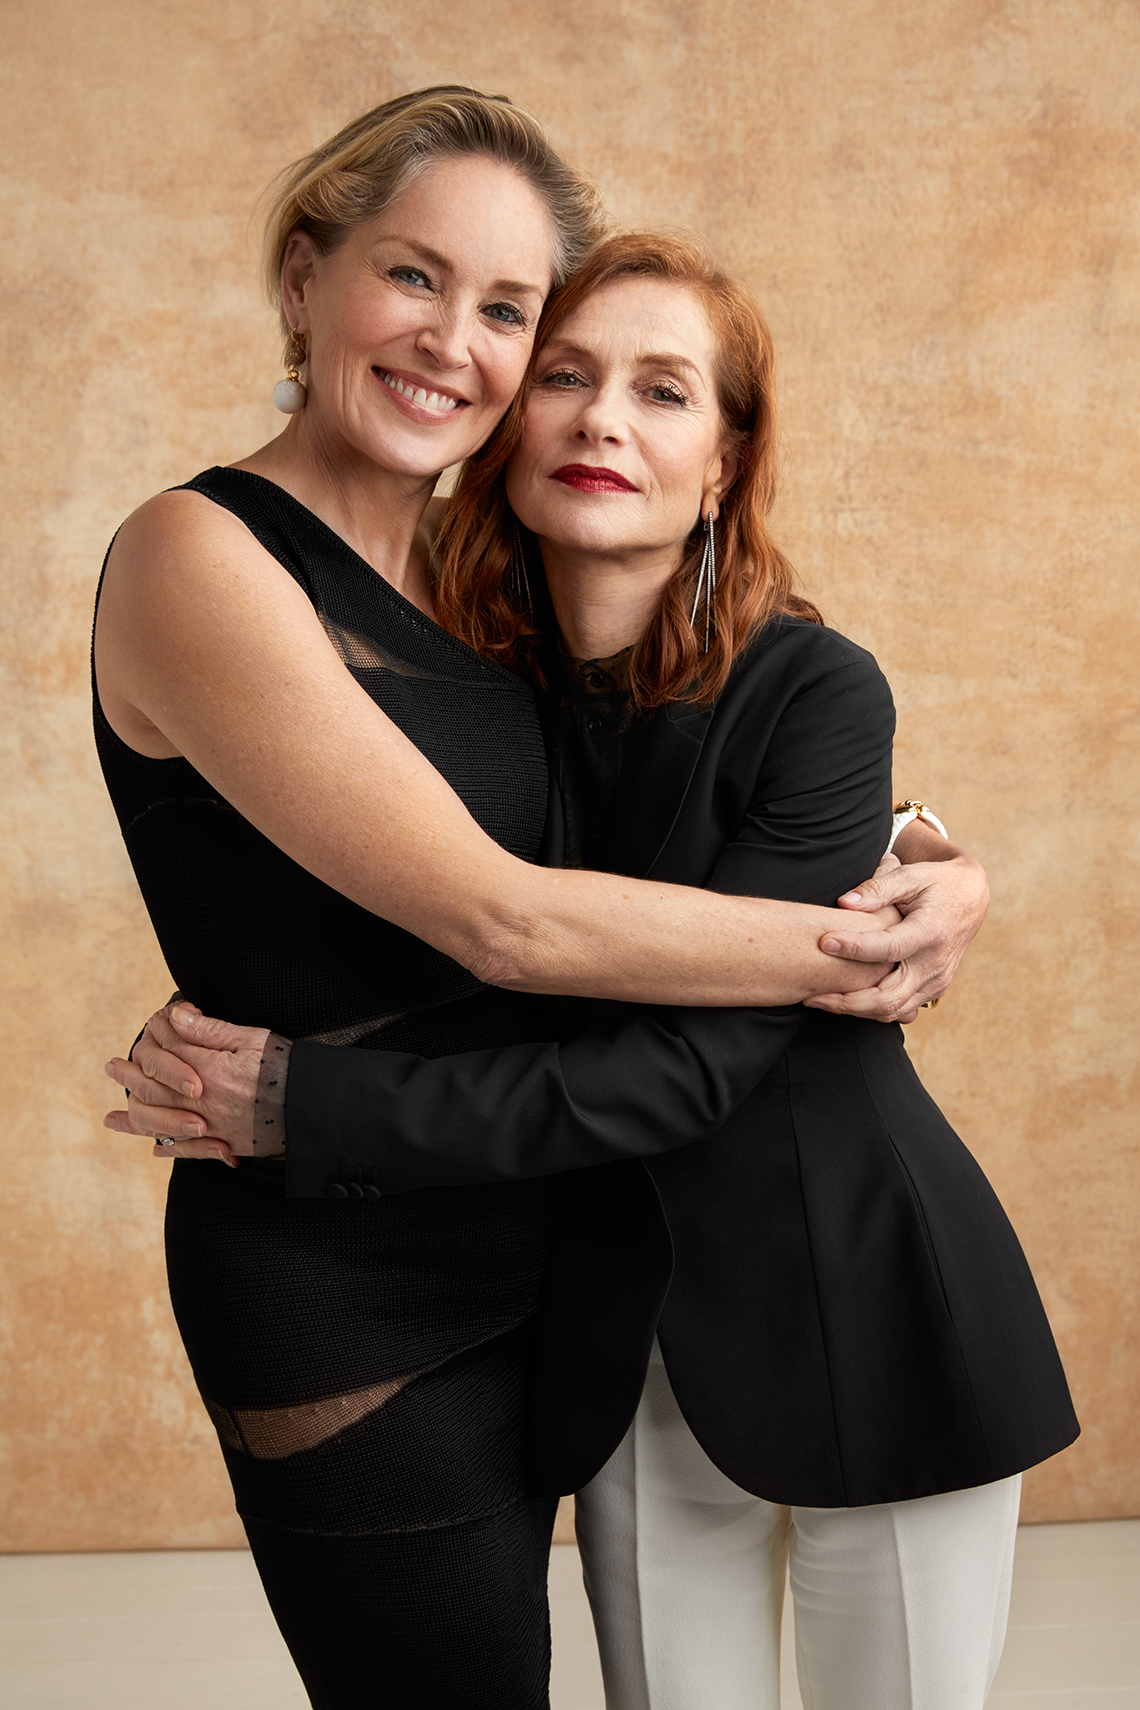 Sharon Stone and Isabelle Huppert at the 16th Annual AARP The Magazine's Movies for Grownups Awards